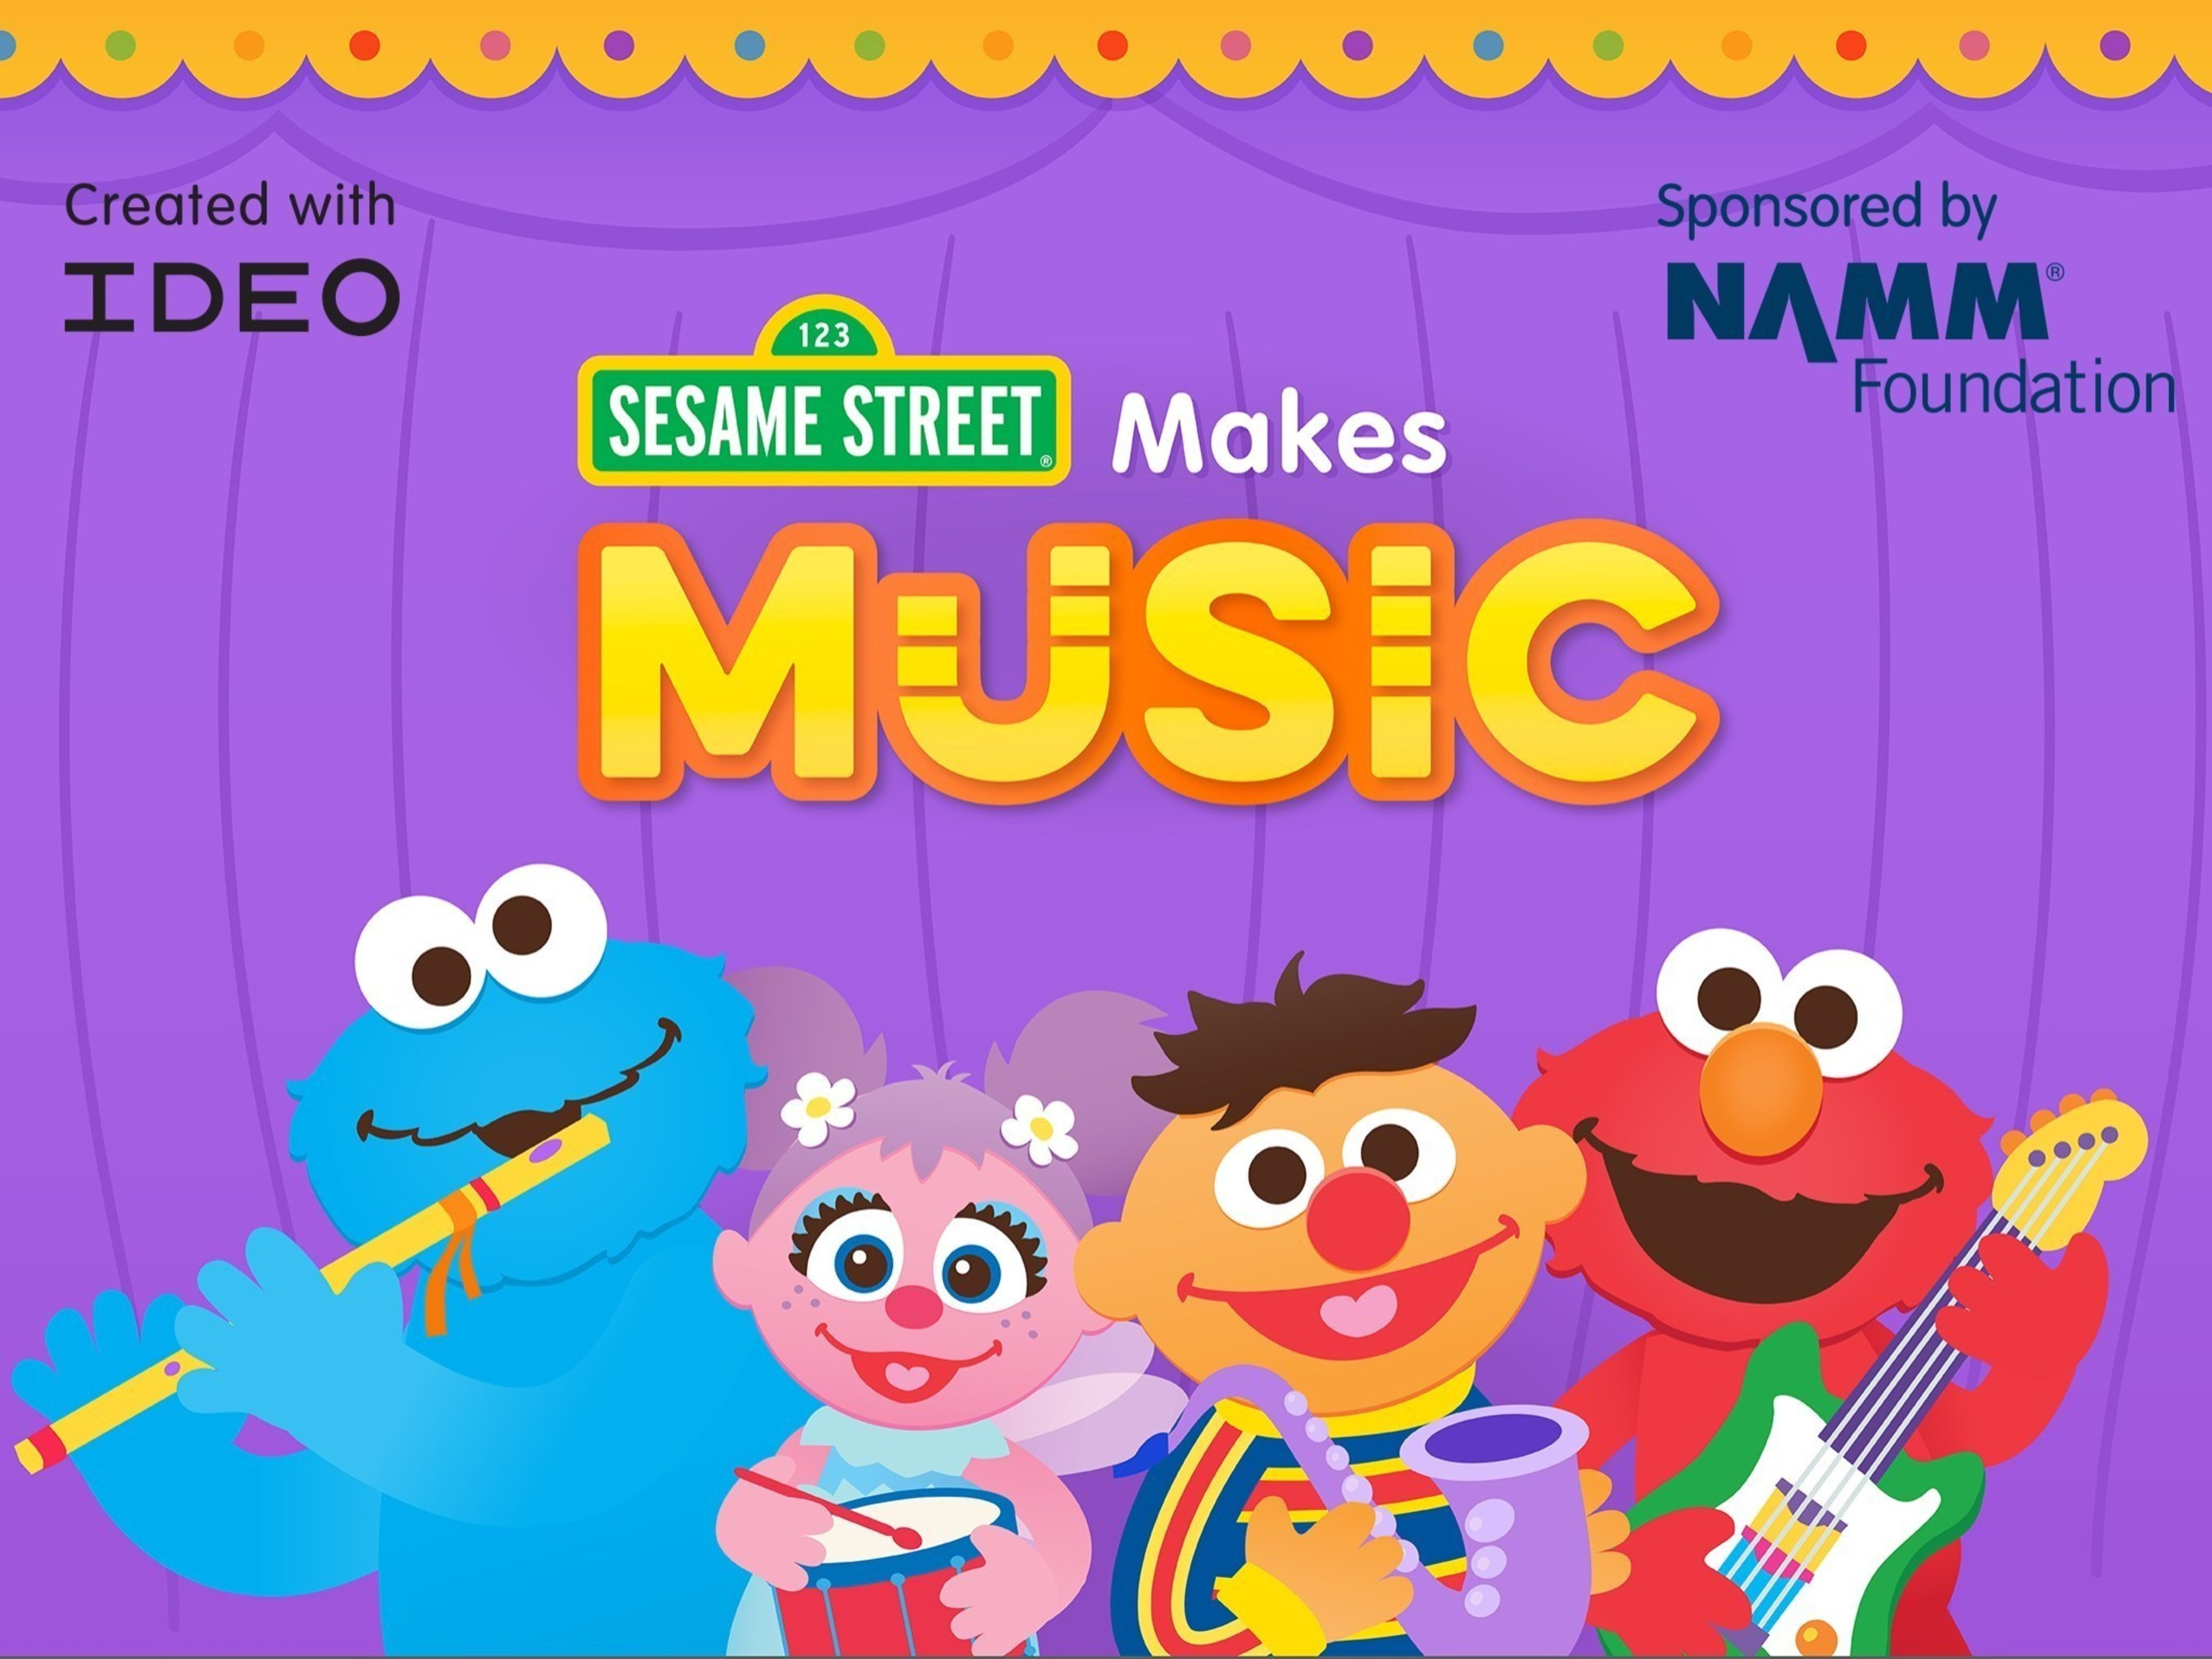 Sesame Street And The NAMM Foundation Invite Kids To Make Music With New App